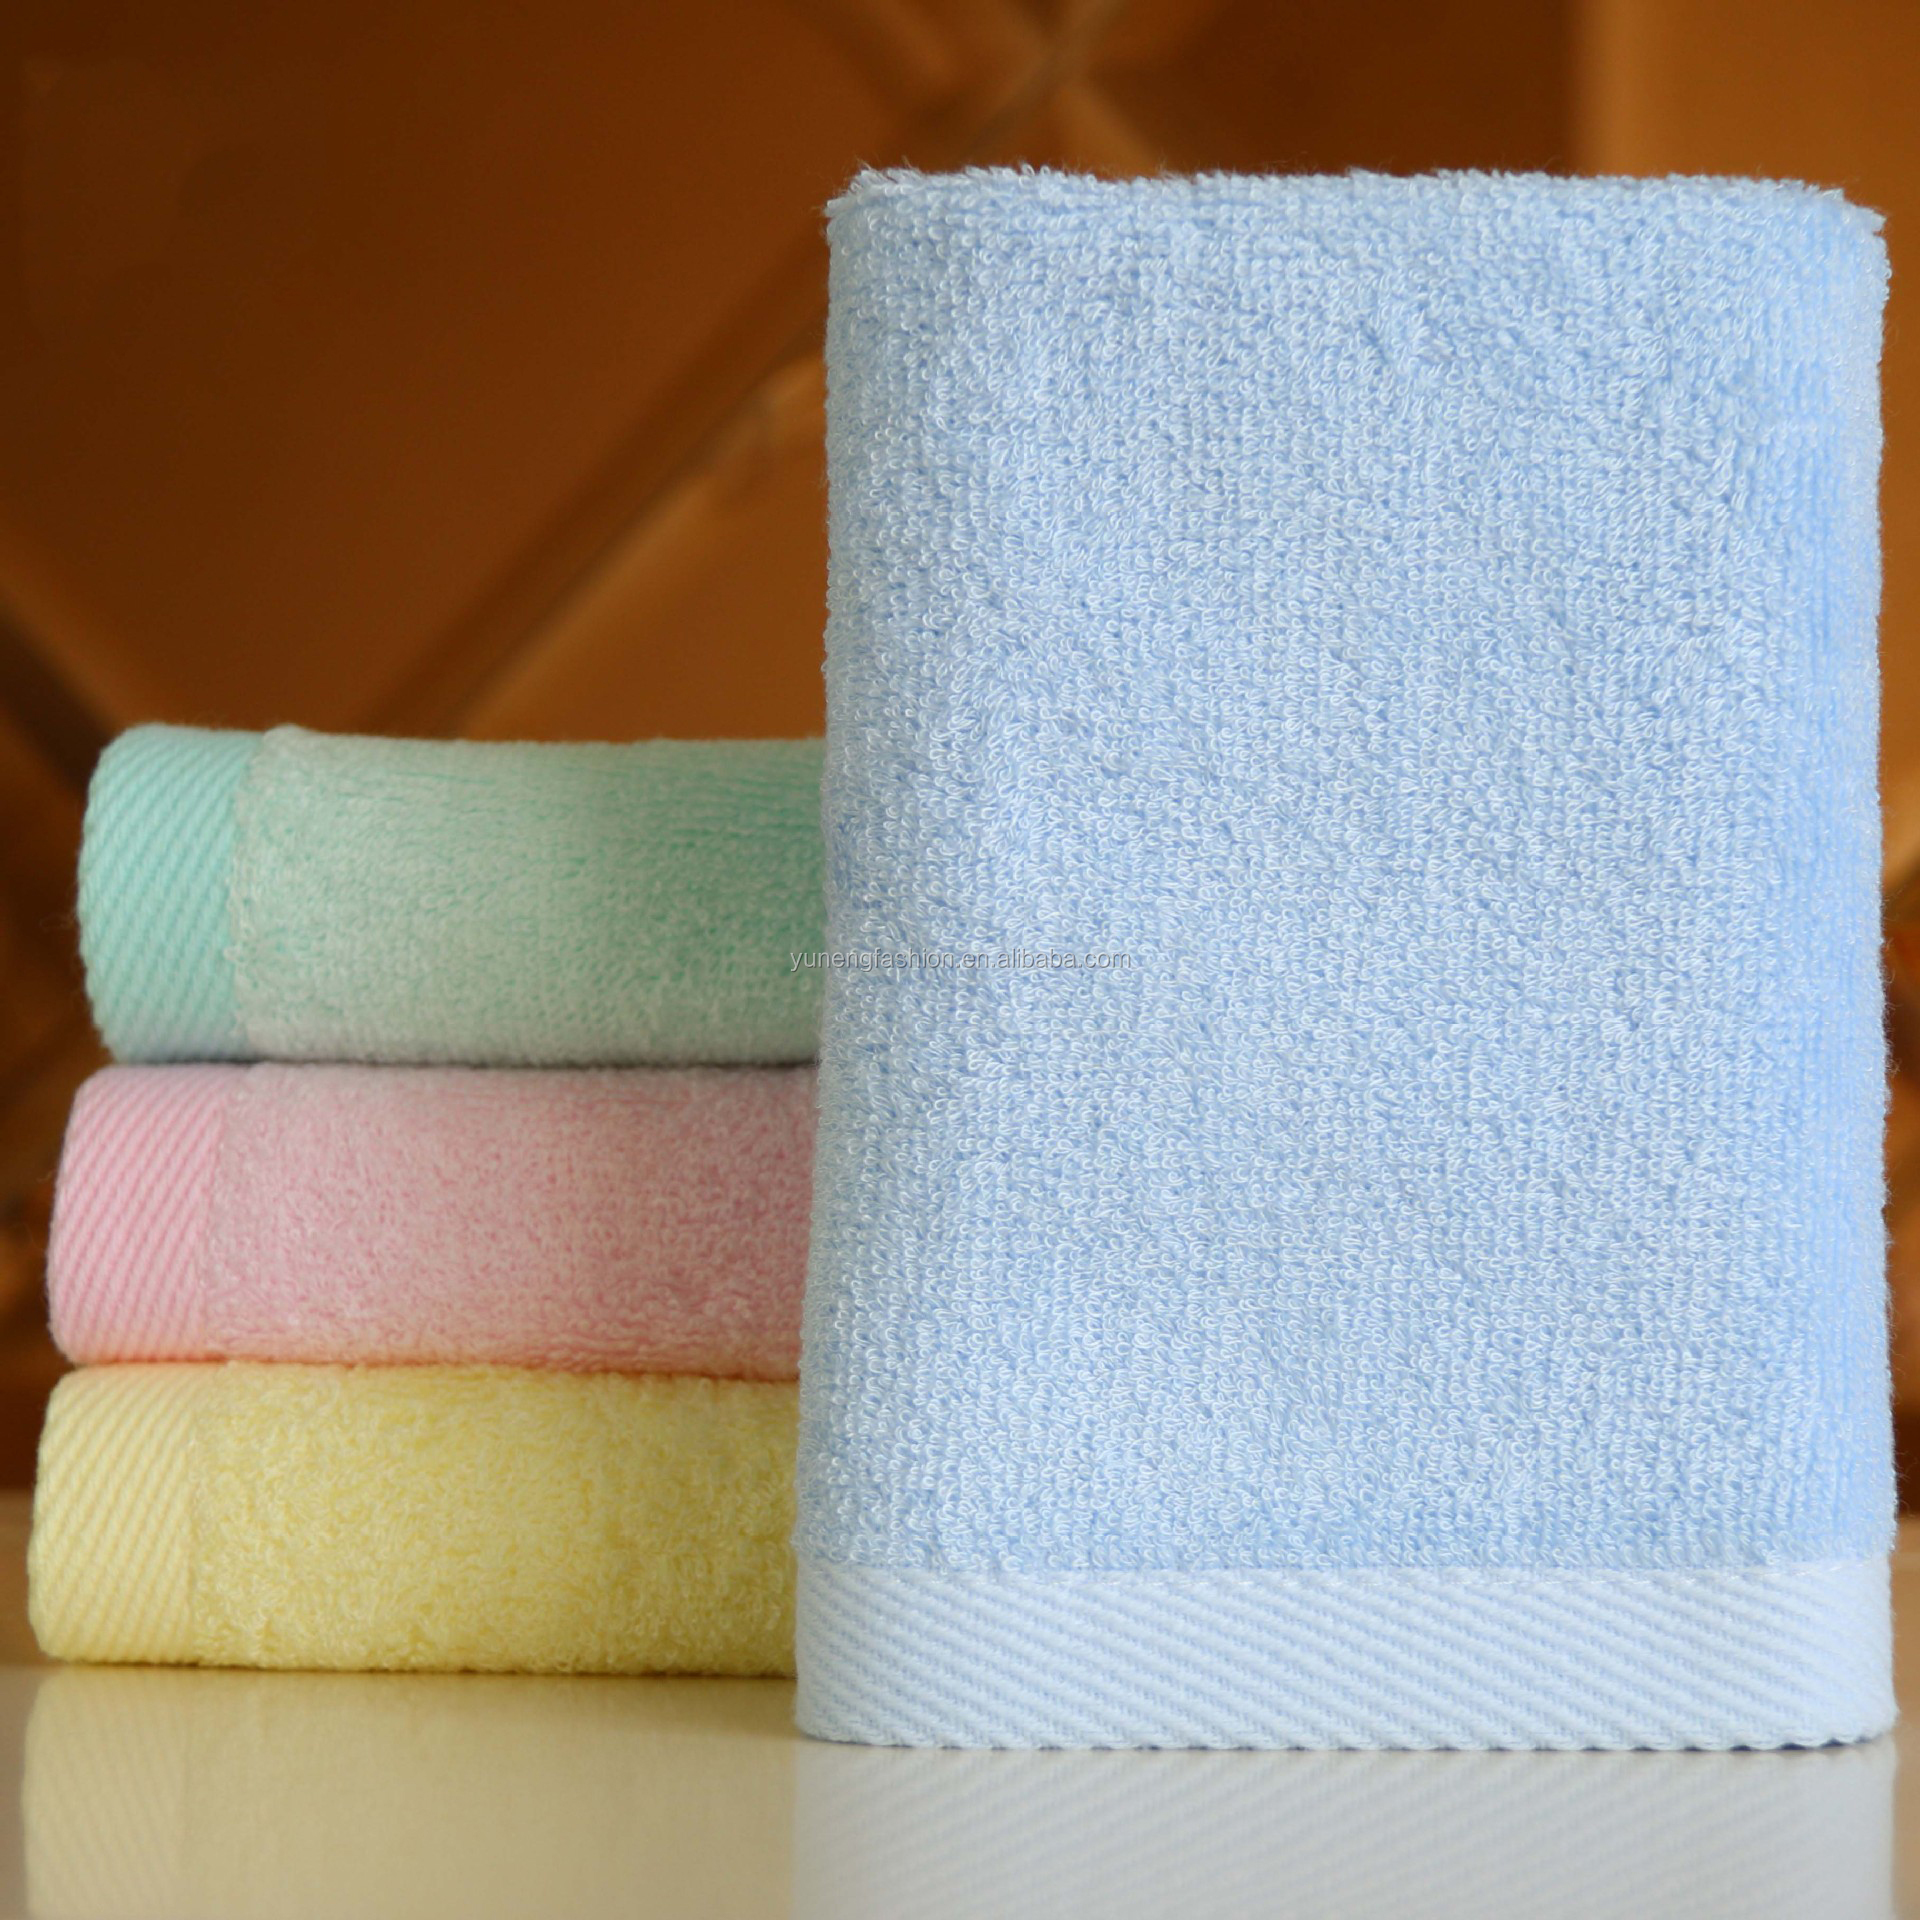 China towel factory supply 100% Bamboo Fiber Baby Towel promotion bamboo towel